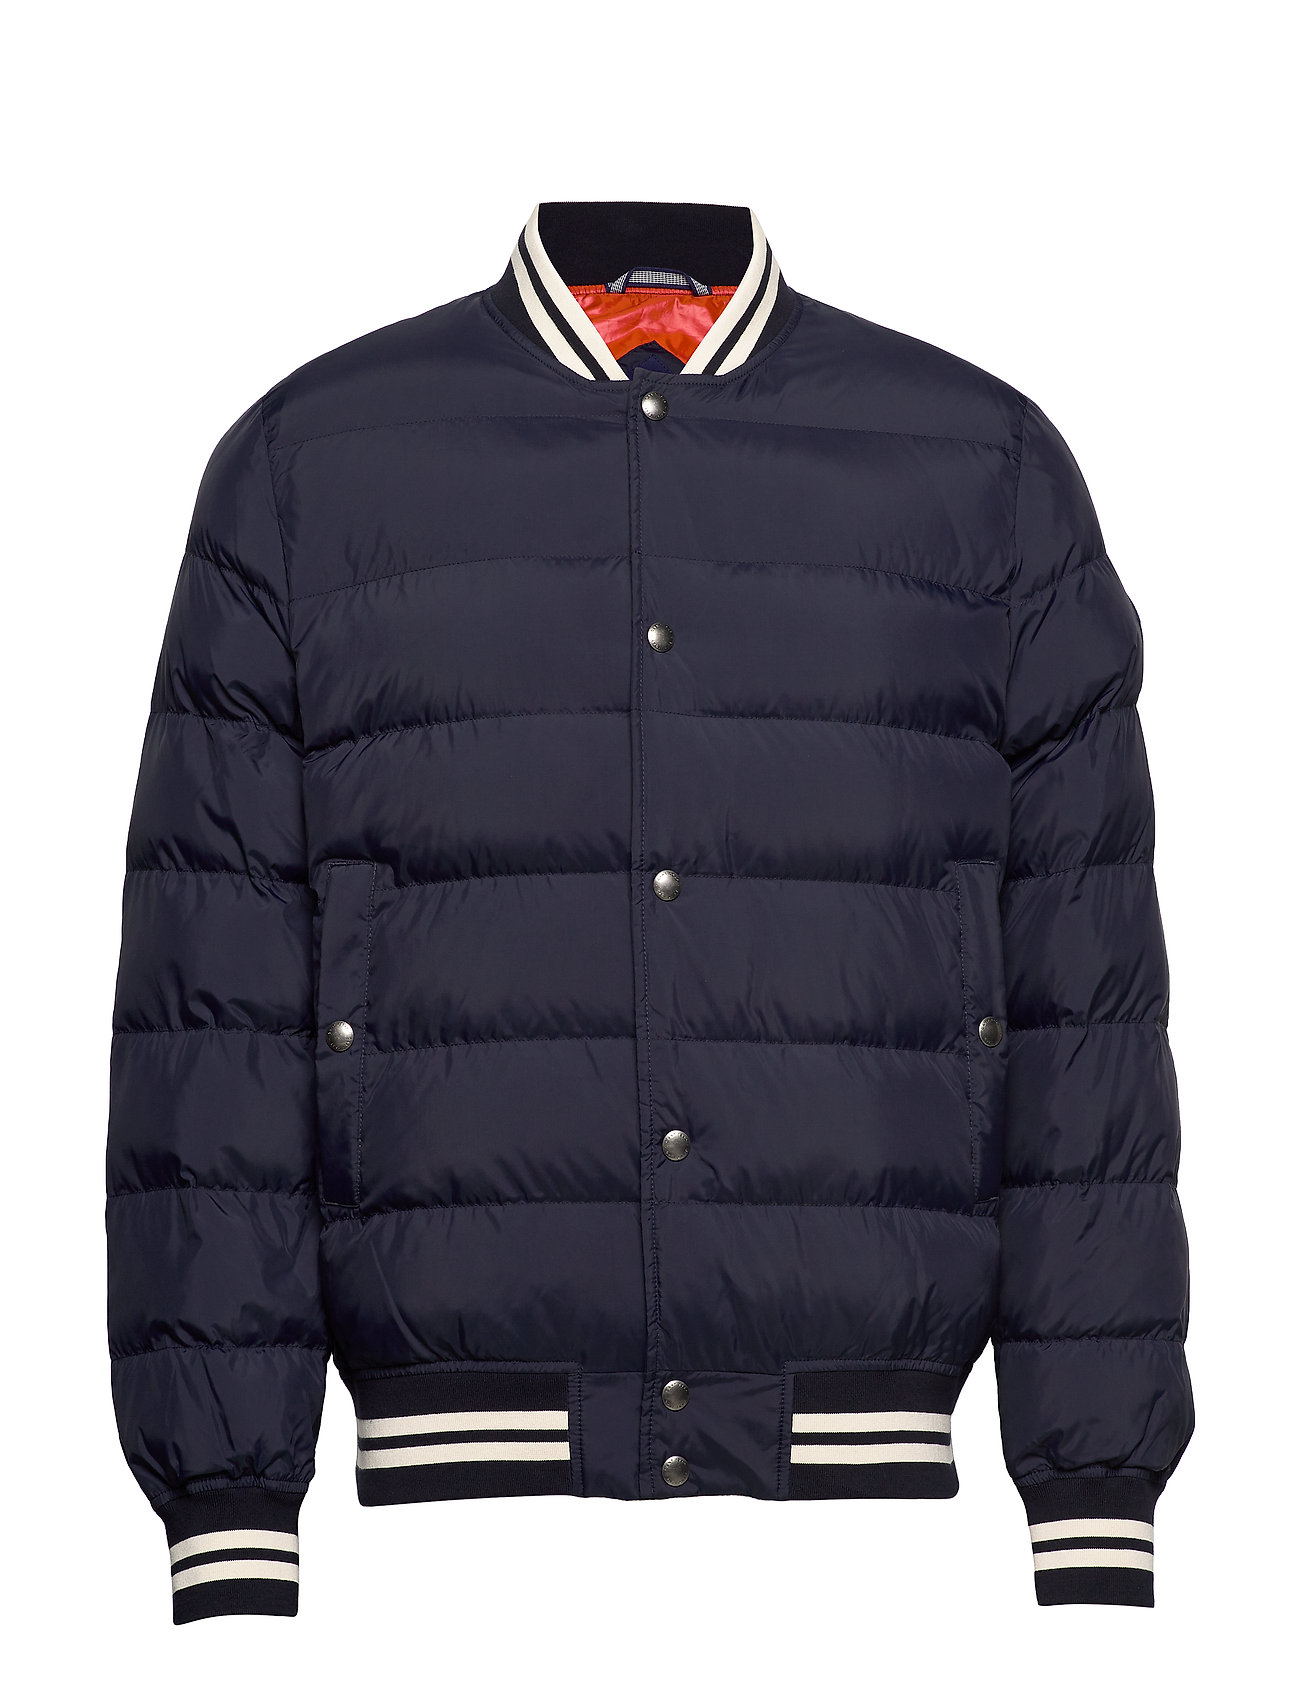 Gant D1. THE CLOUD GANT VARSITY - EVENING BLUE